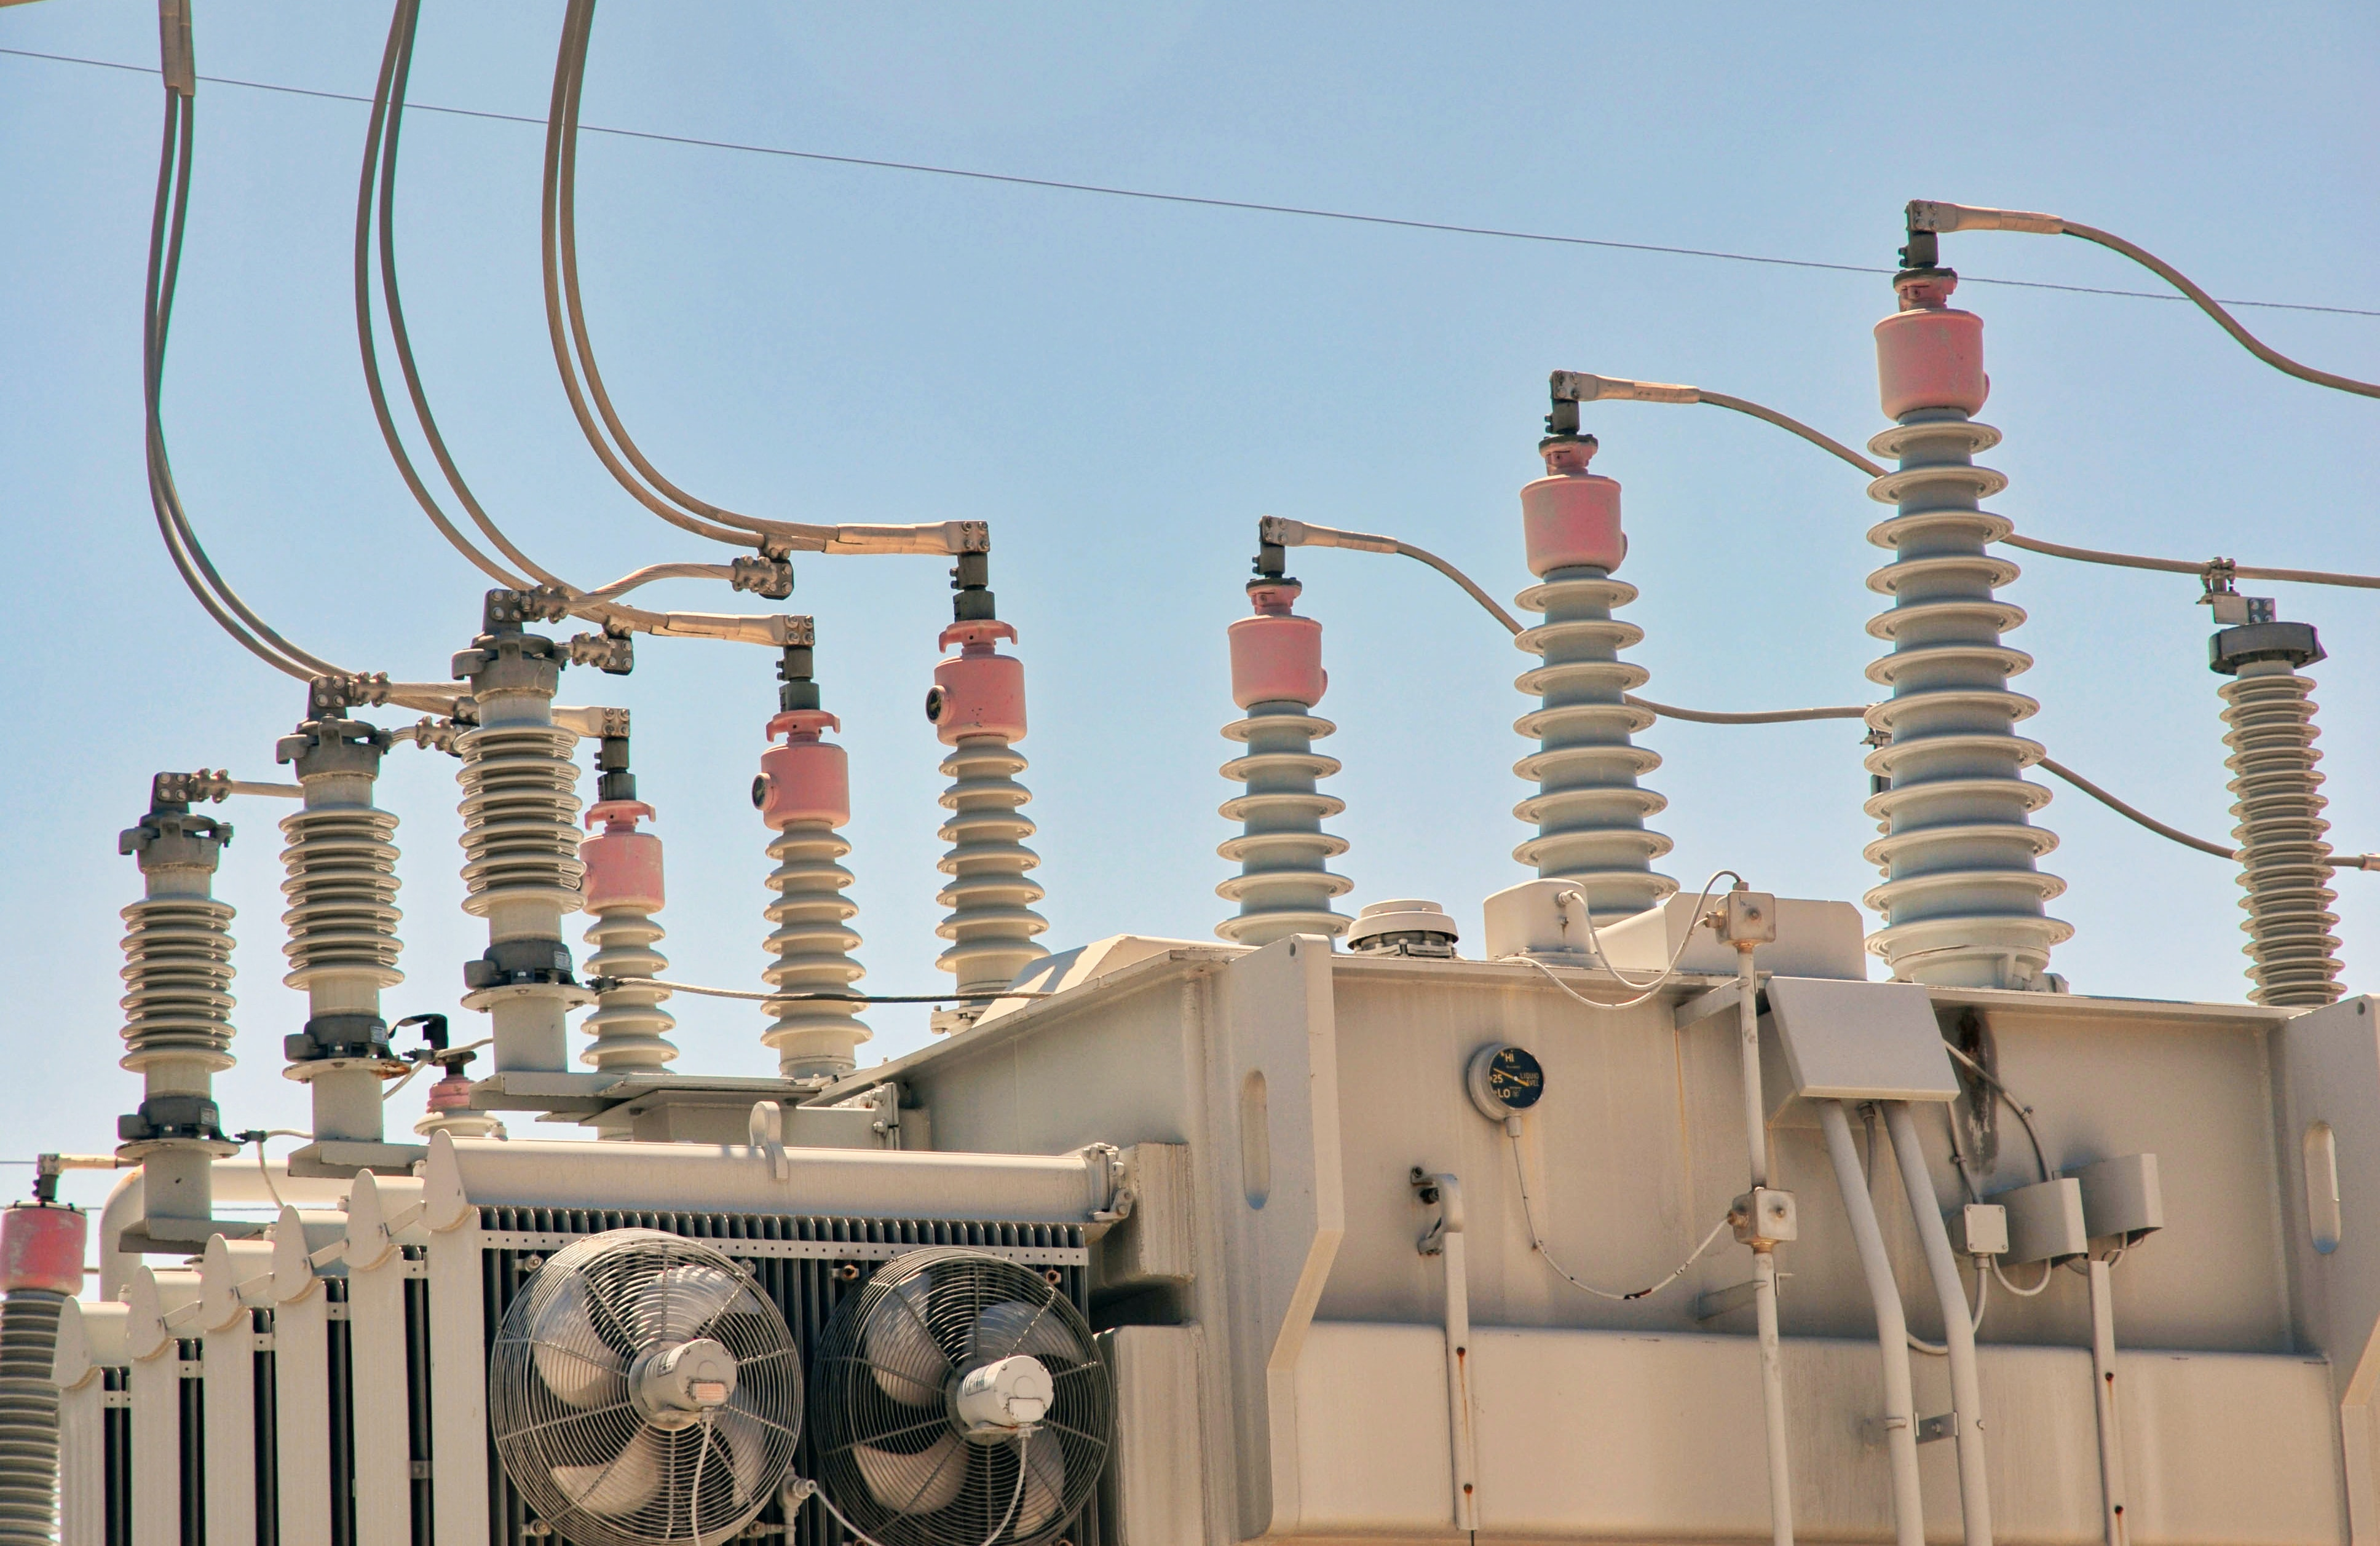 Transformer Types Based On Voltage Level, Core Material, Winding Arrangement, Usage